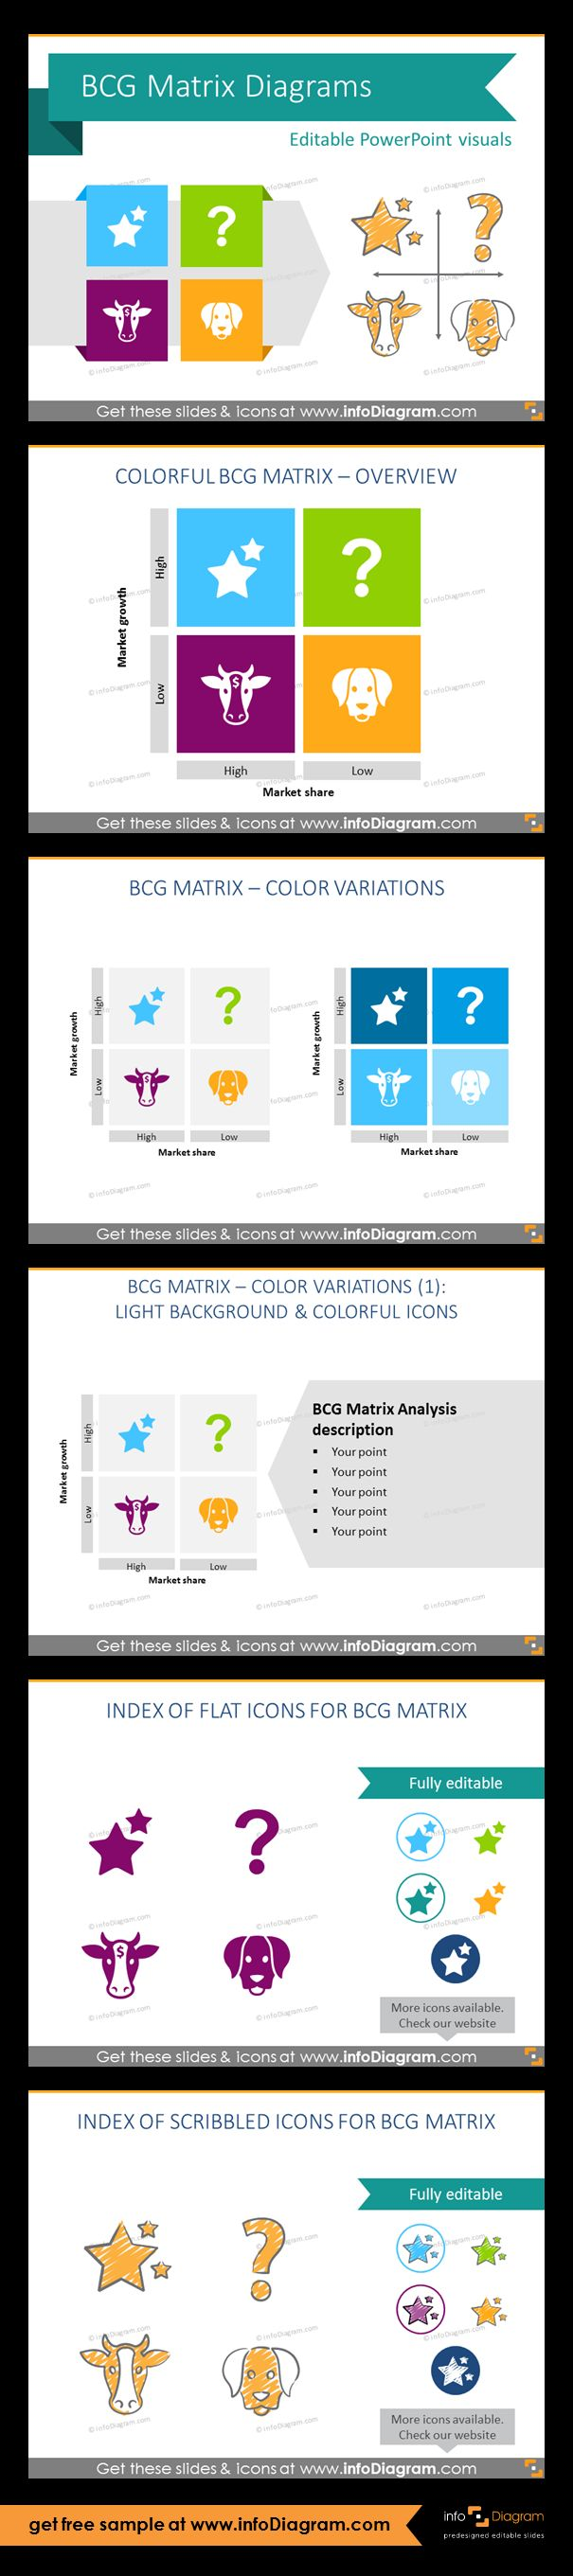 Collection of BCG diagrams as pre-designed PowerPoint slides. Set of various diagrams representing four distinct product groups: Stars, Cash Cows, Question Marks and Dog. Example of color variations, index of flat and scribbled icons for BCG matrix. Presentation template suitable for marketing and business development presentations. Fully editable style. Size and colors easy to adjust using PowerPoint editor.